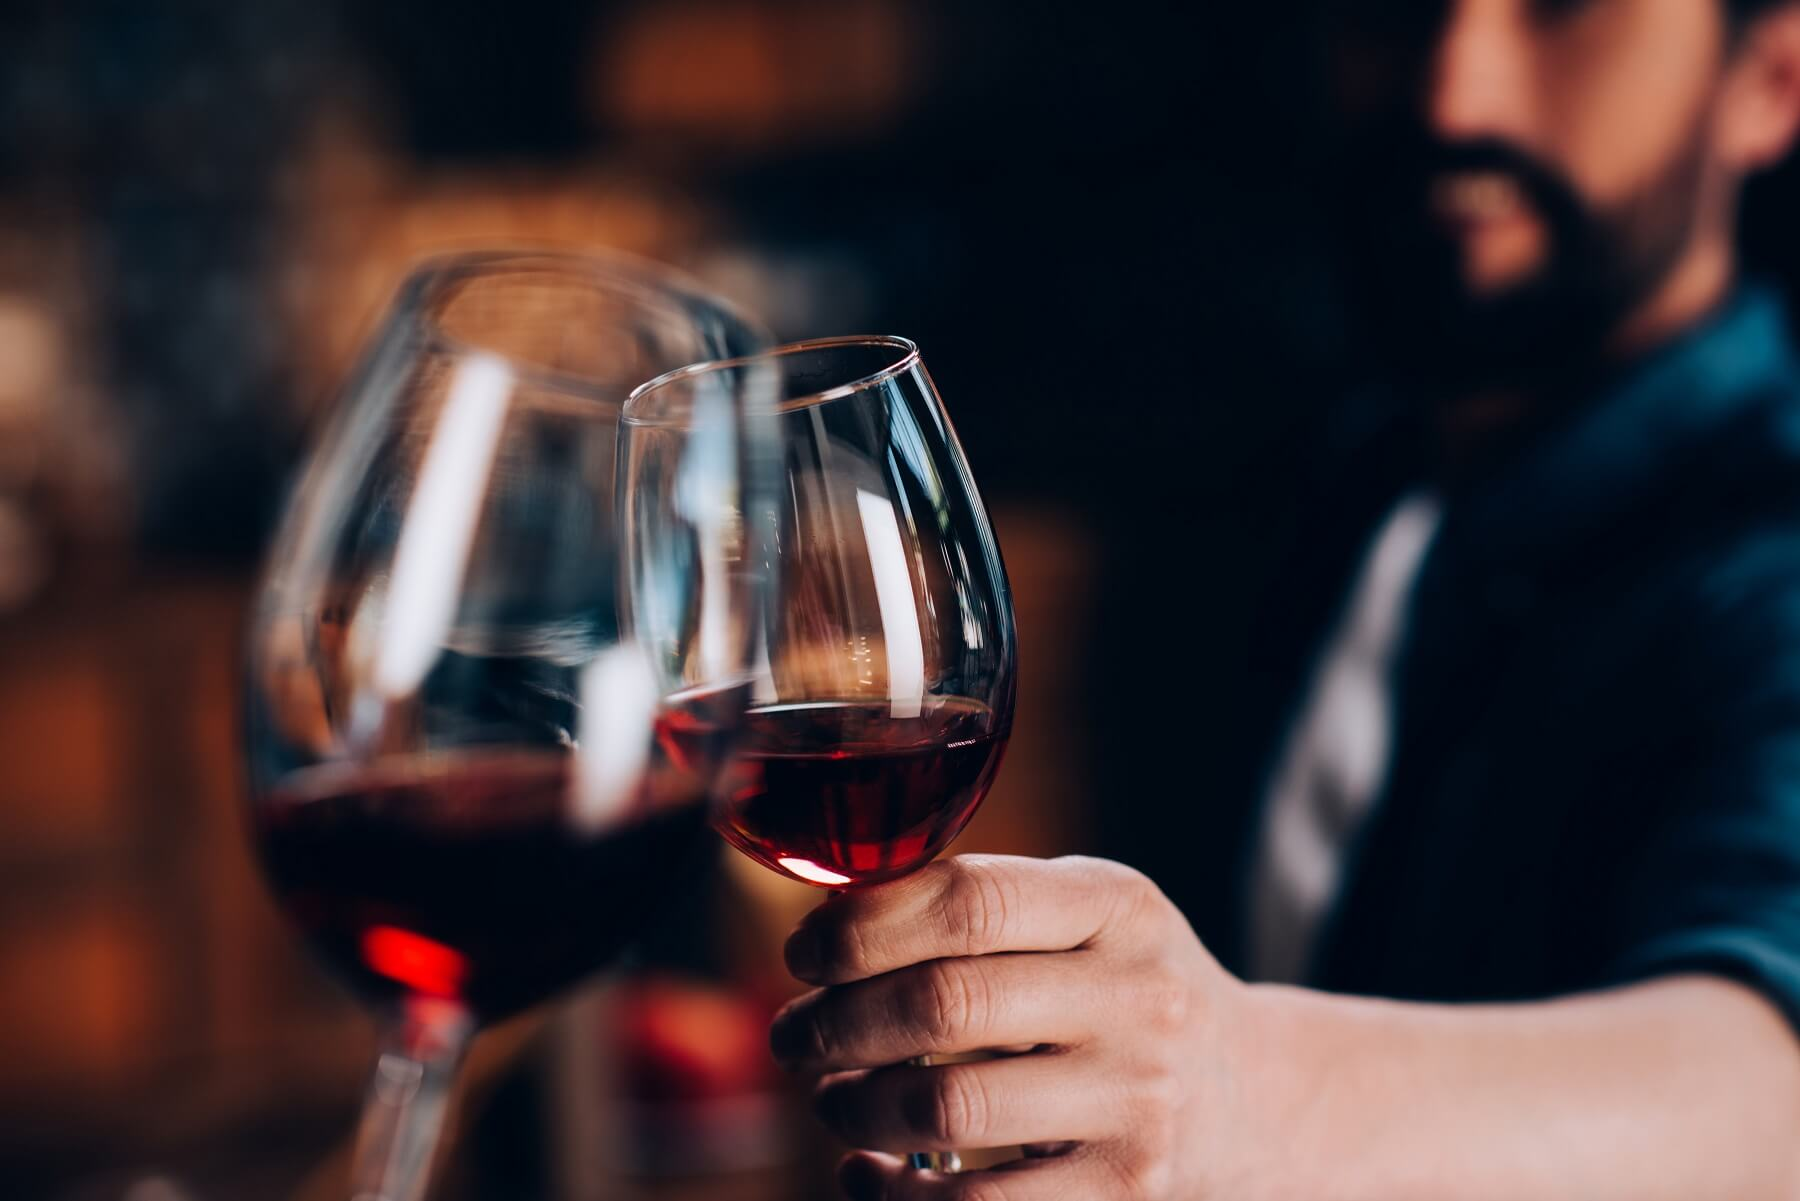 Does wine really make you live longer and better? We summarise the major studies to get to the bottom on what we currently know.